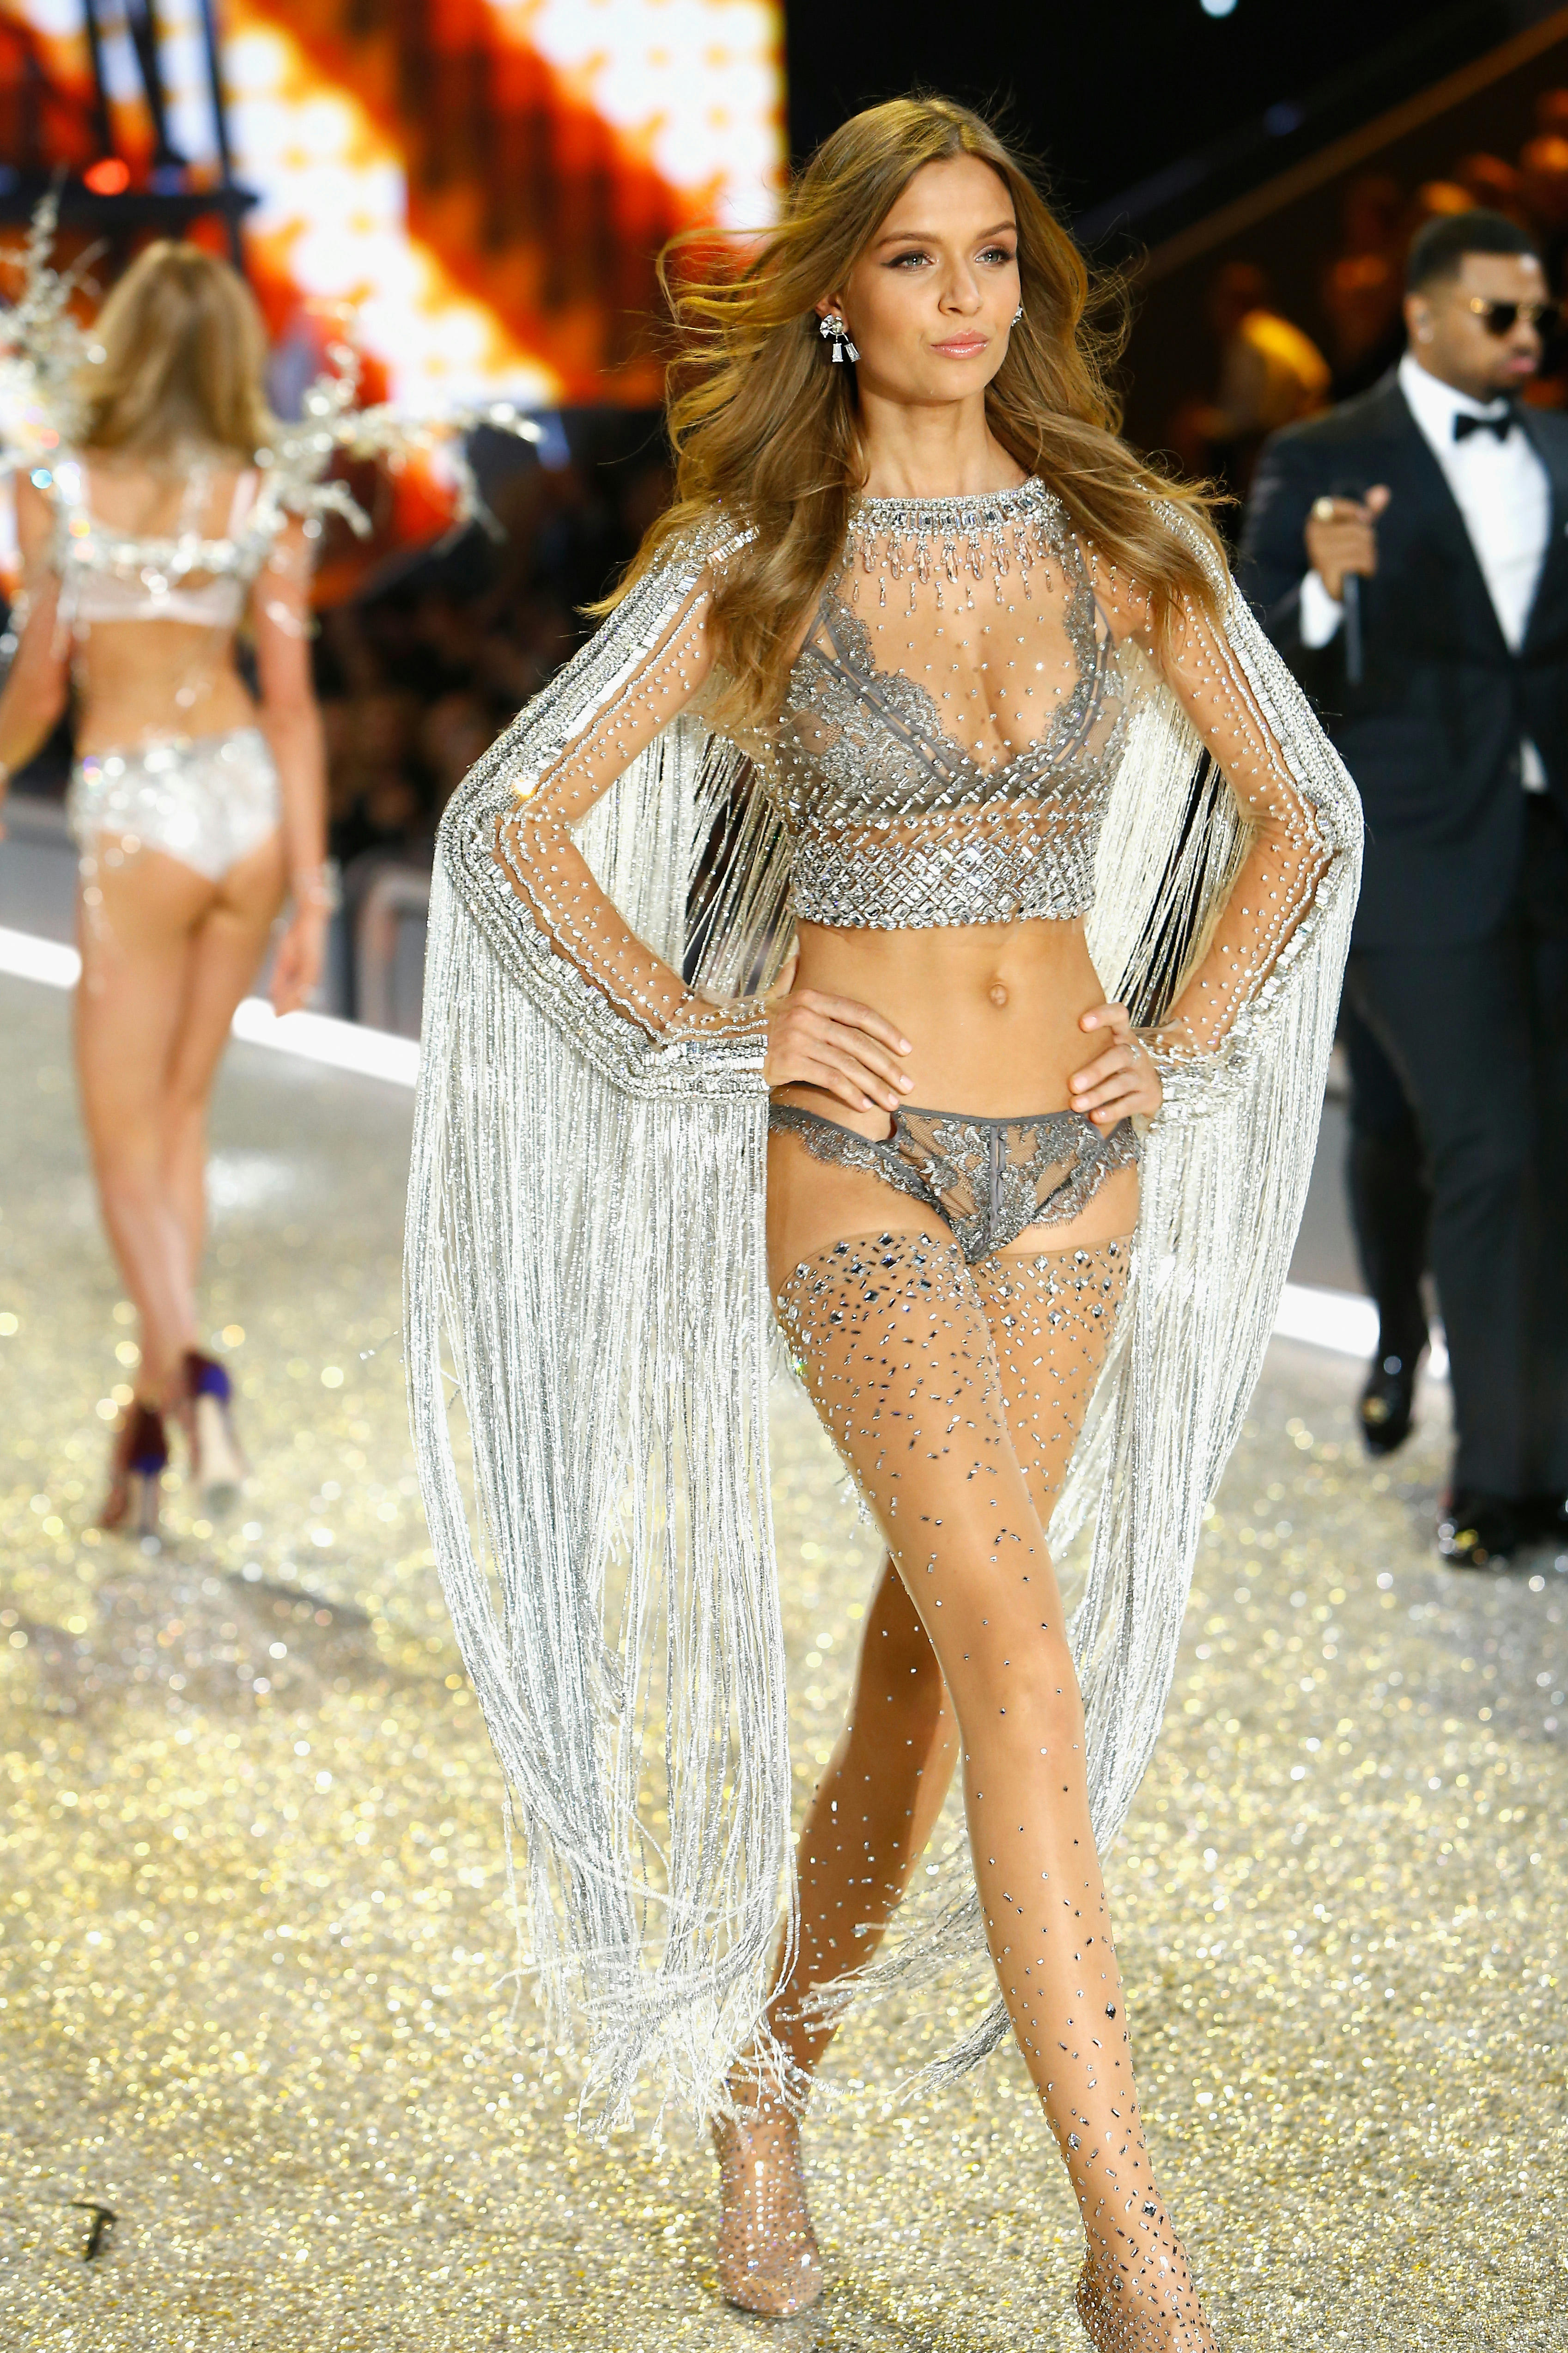 Josephine Skriver wears the Swarovski look with Swarovski crystals at VSFS